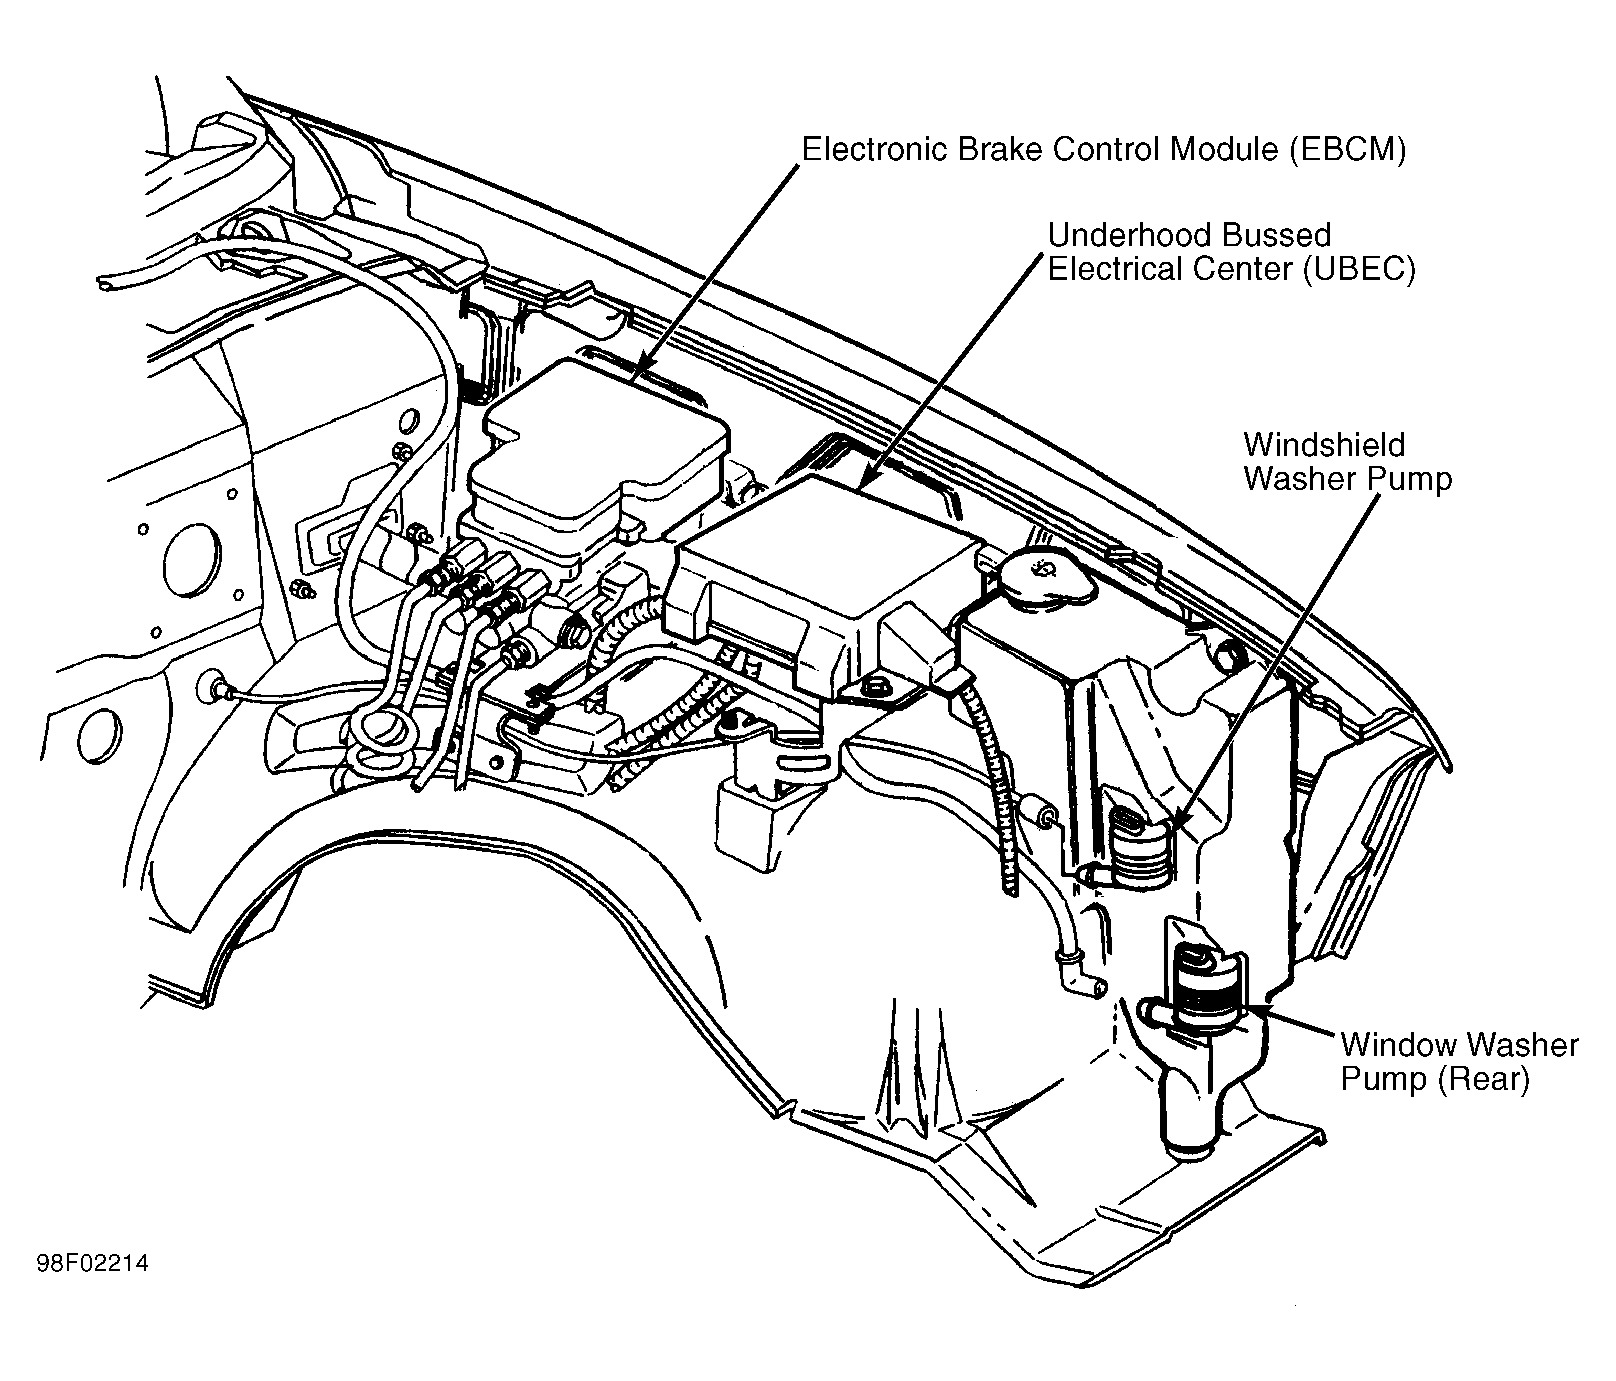 1998 gmc sonoma fuse box detailed schematics diagram rh antonartgallery com  1994 gmc sonoma fuse box location 1994 gmc sonoma fuse box diagram